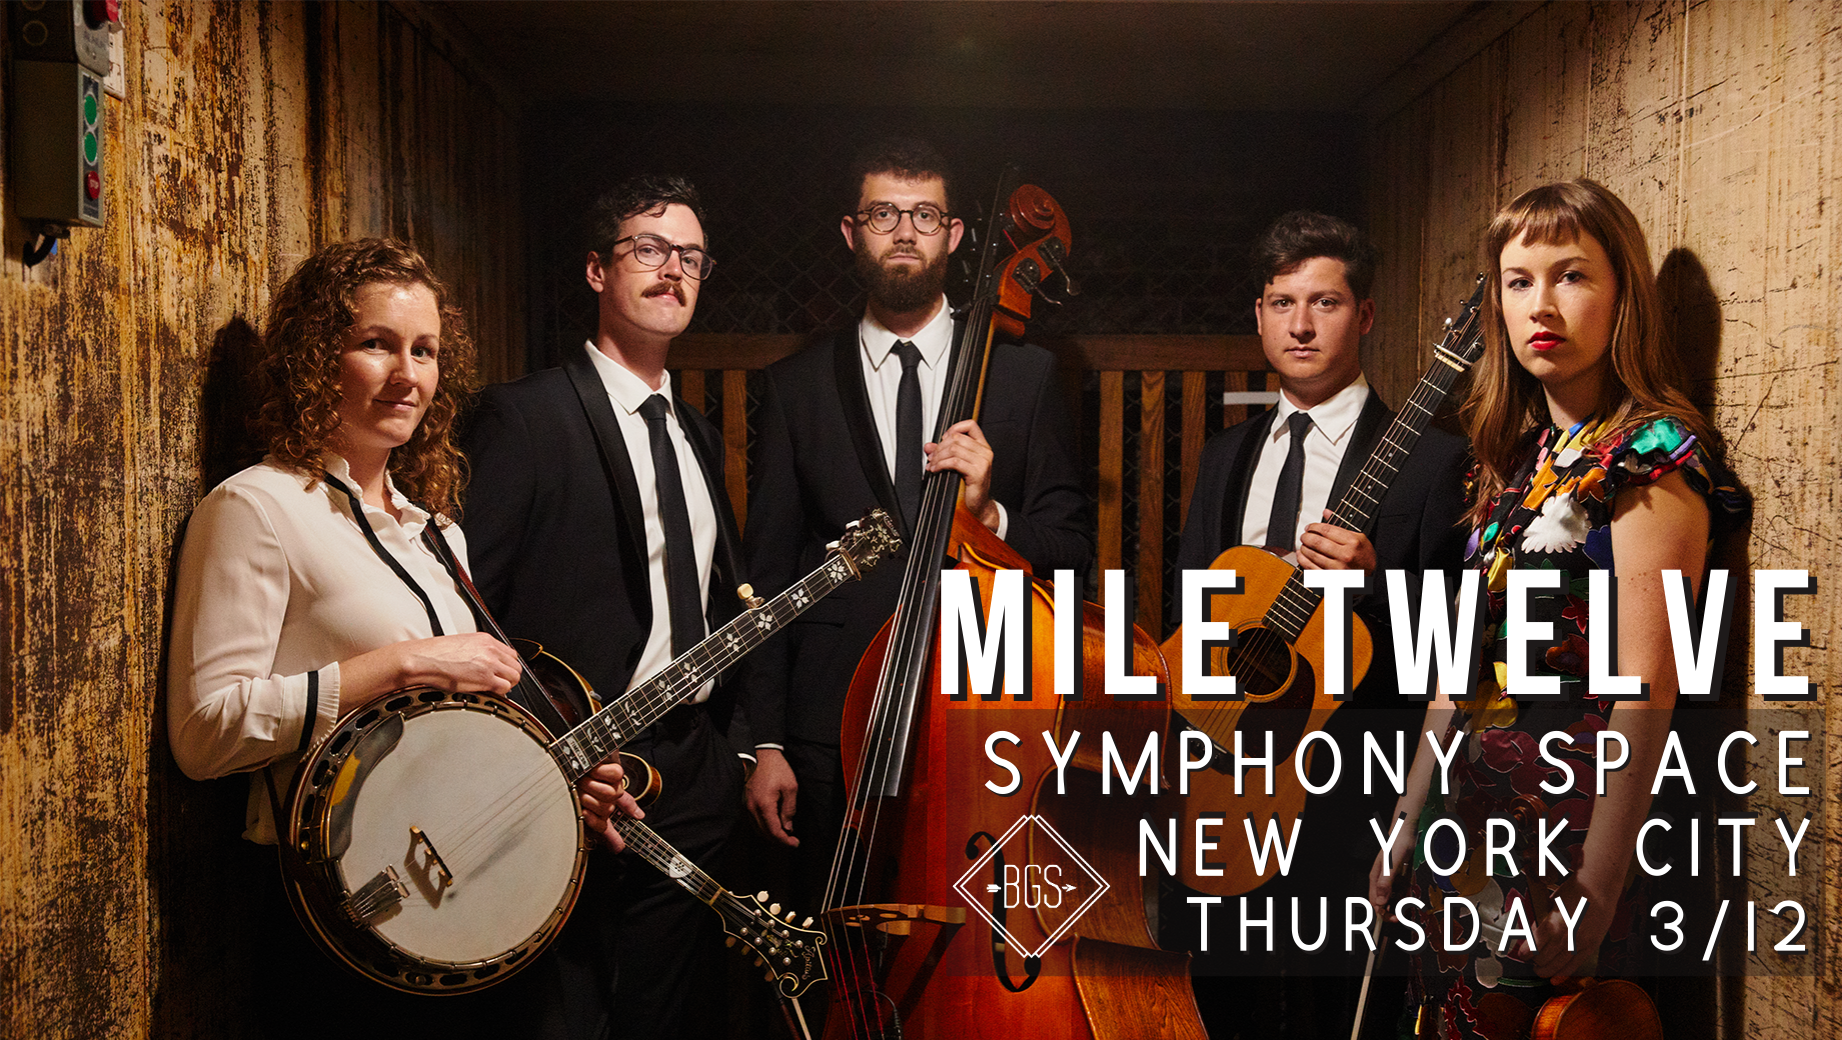 GIVEAWAY - Win Tickets to Mile Twelve @ Symphony Space (NYC) 3/12